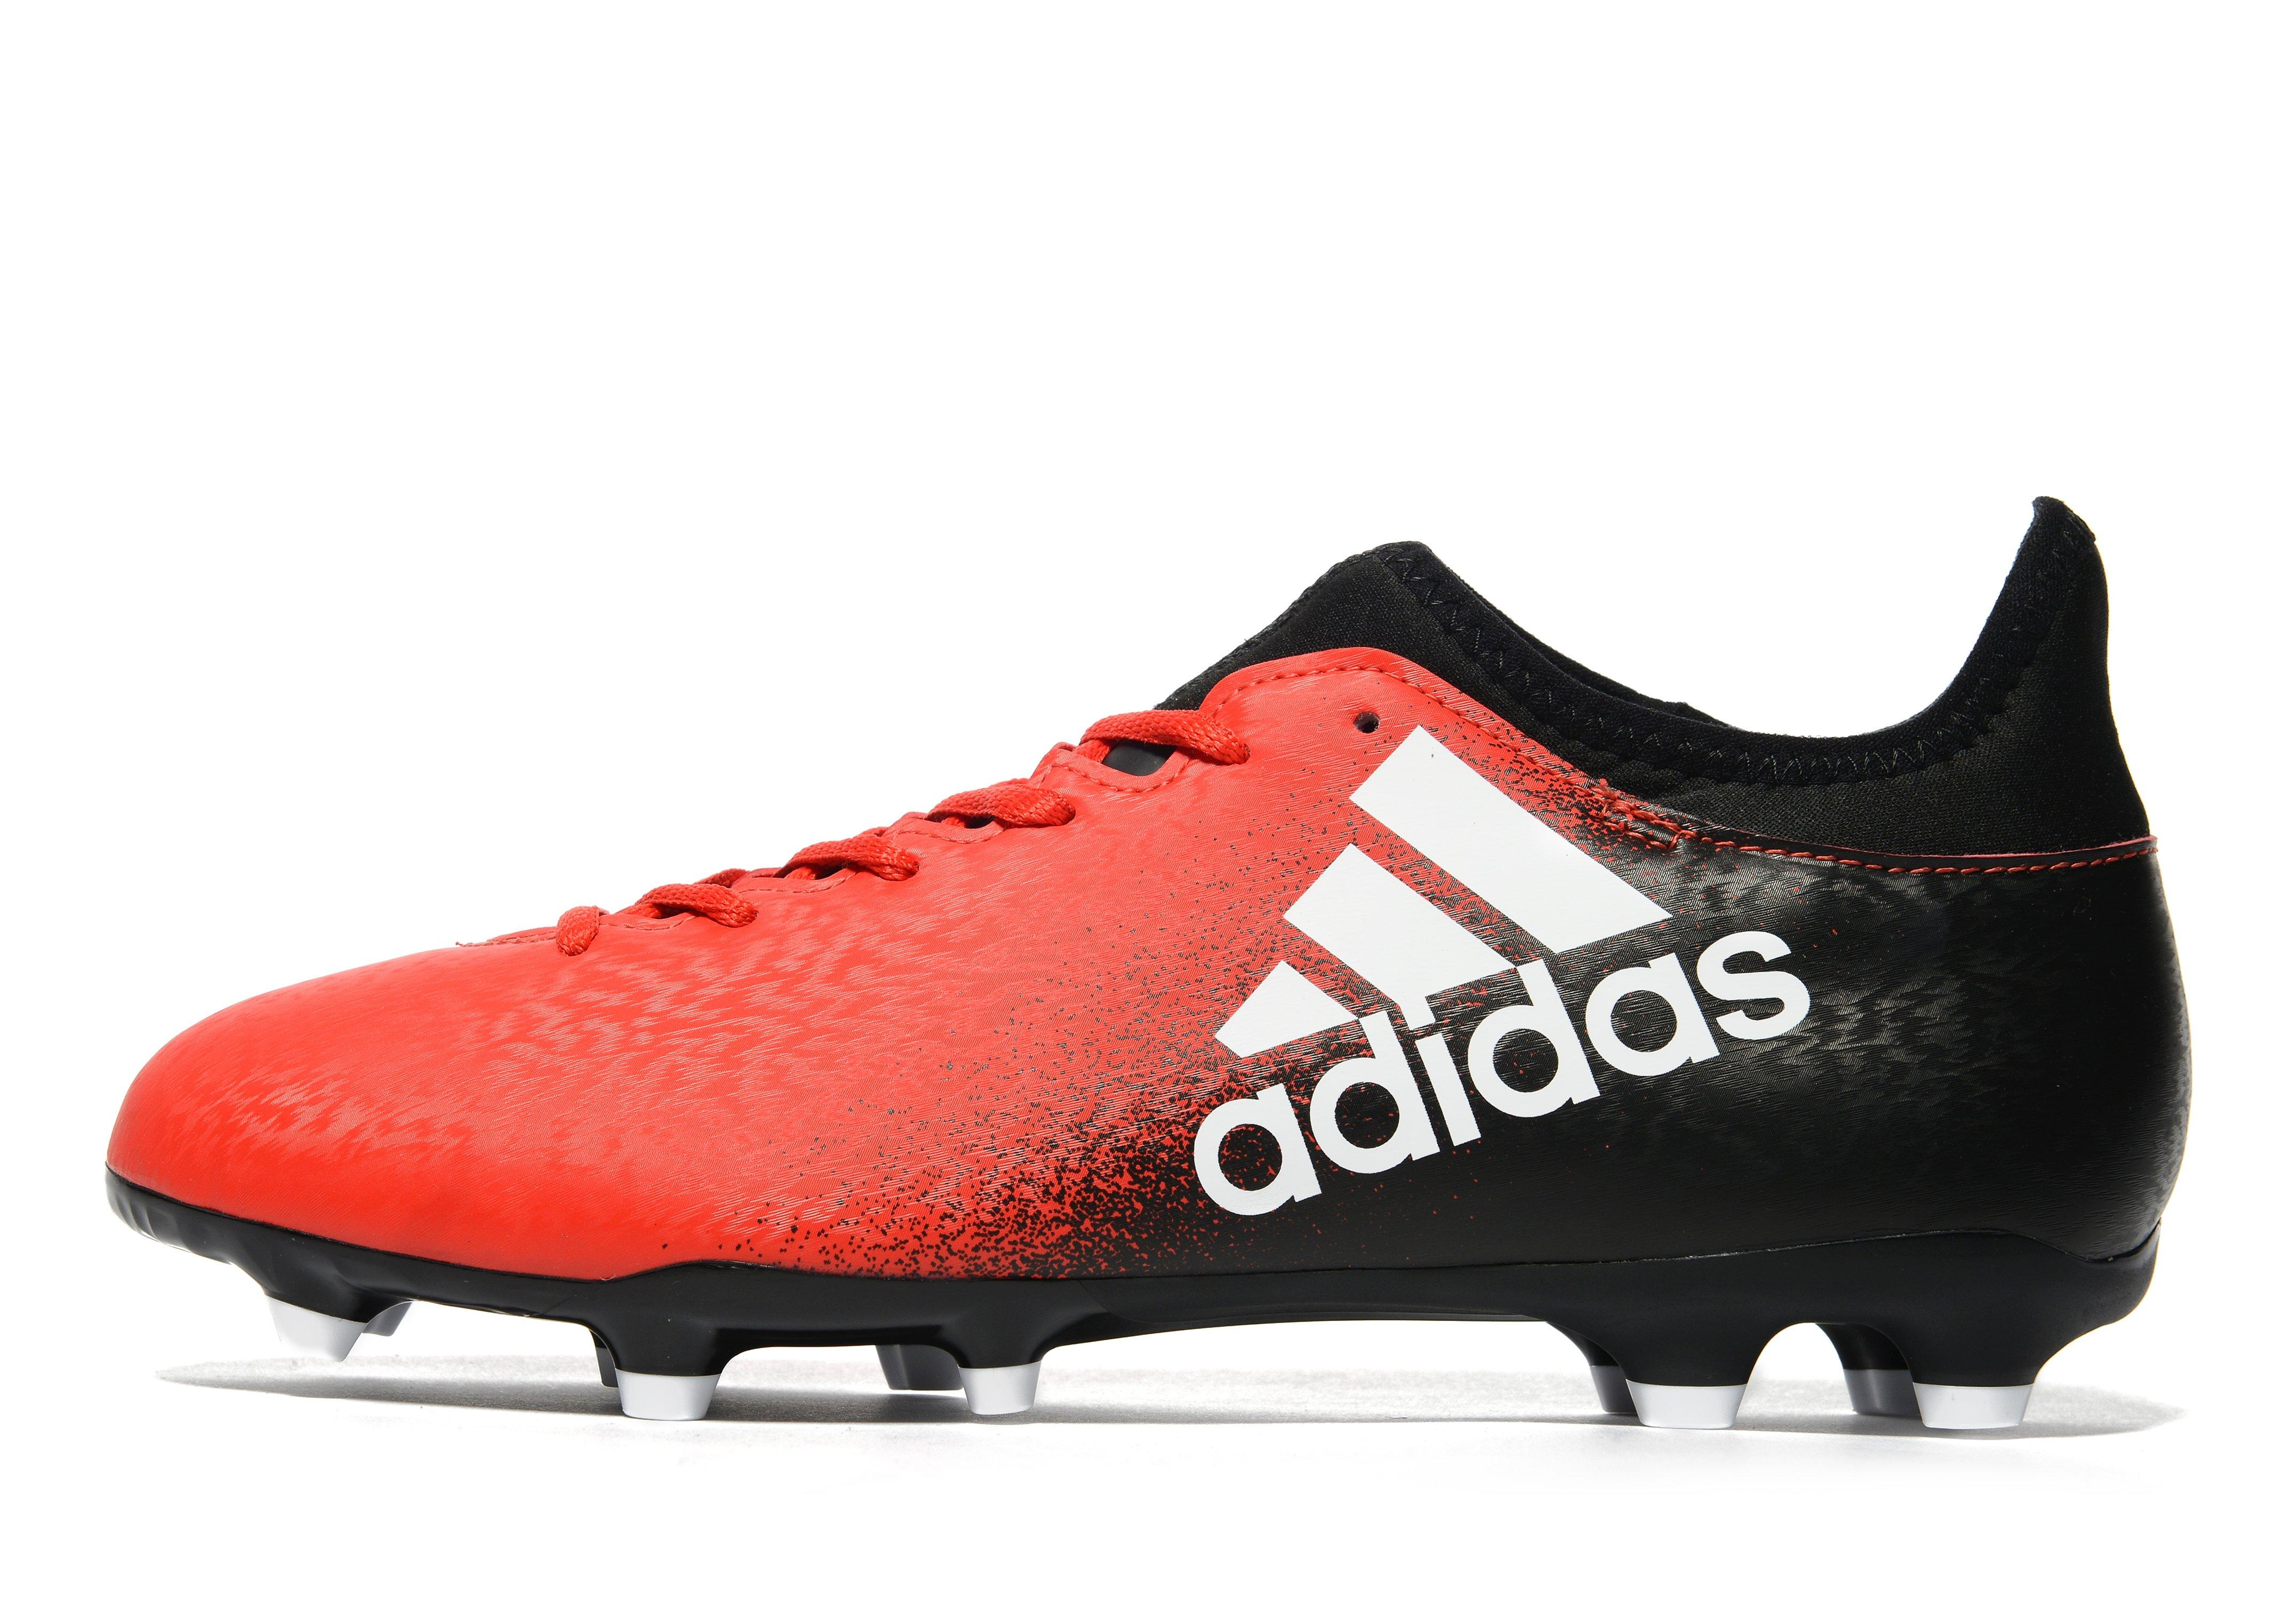 4db9ee7a0 football boots white red; adidas red limit x 16.3 fg jd sports